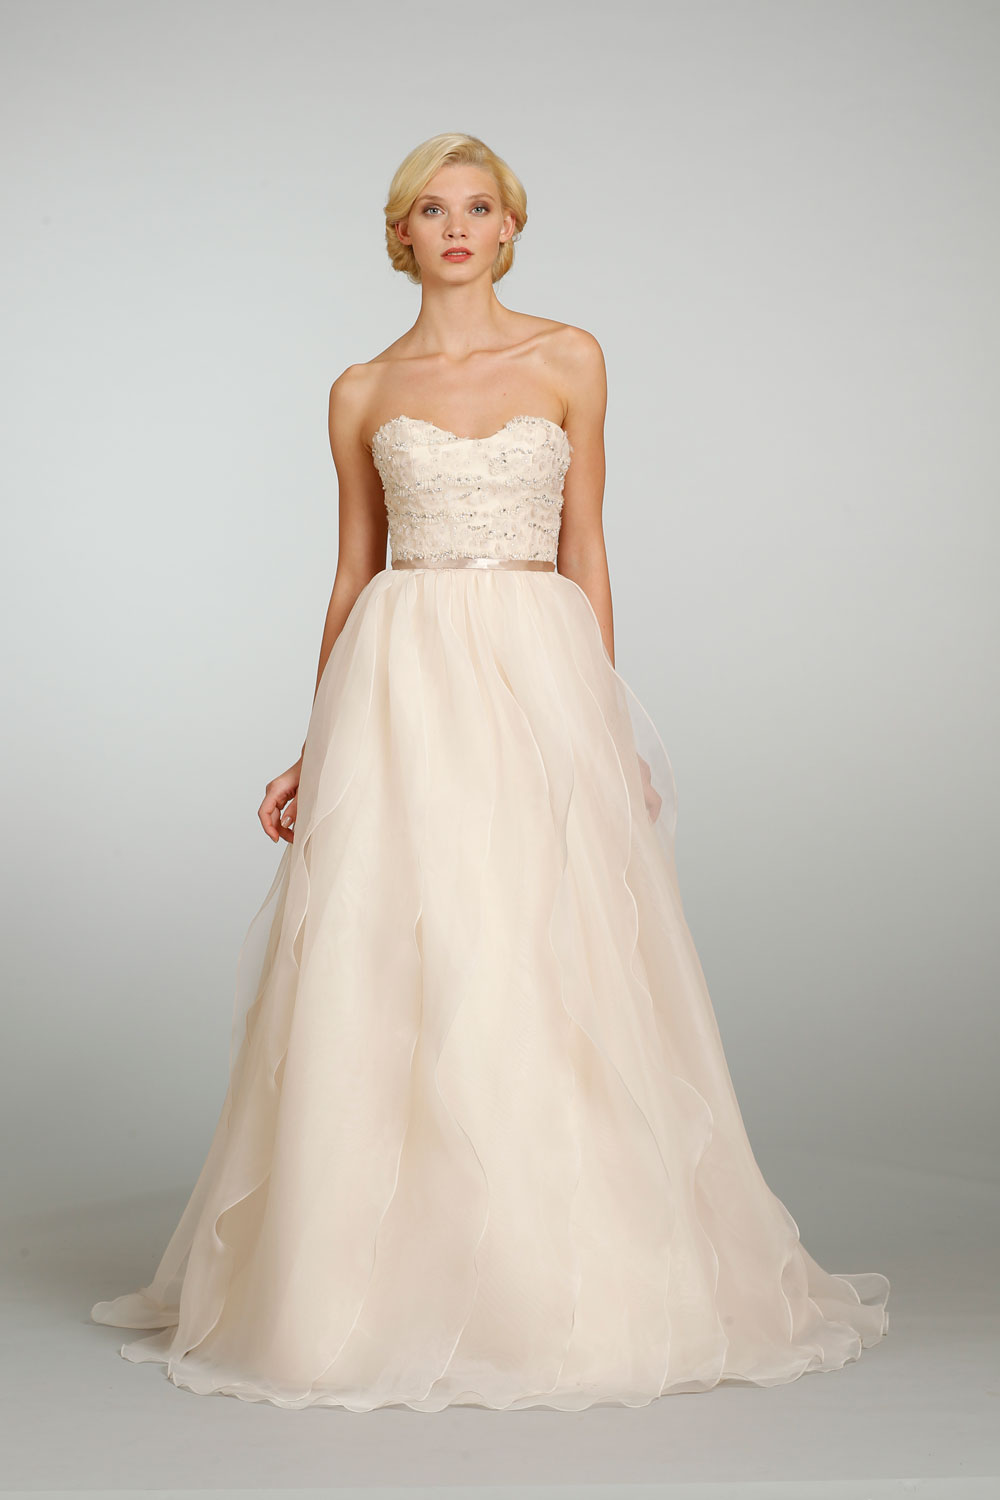 Blush Colored Wedding Gowns 001 - Blush Colored Wedding Gowns